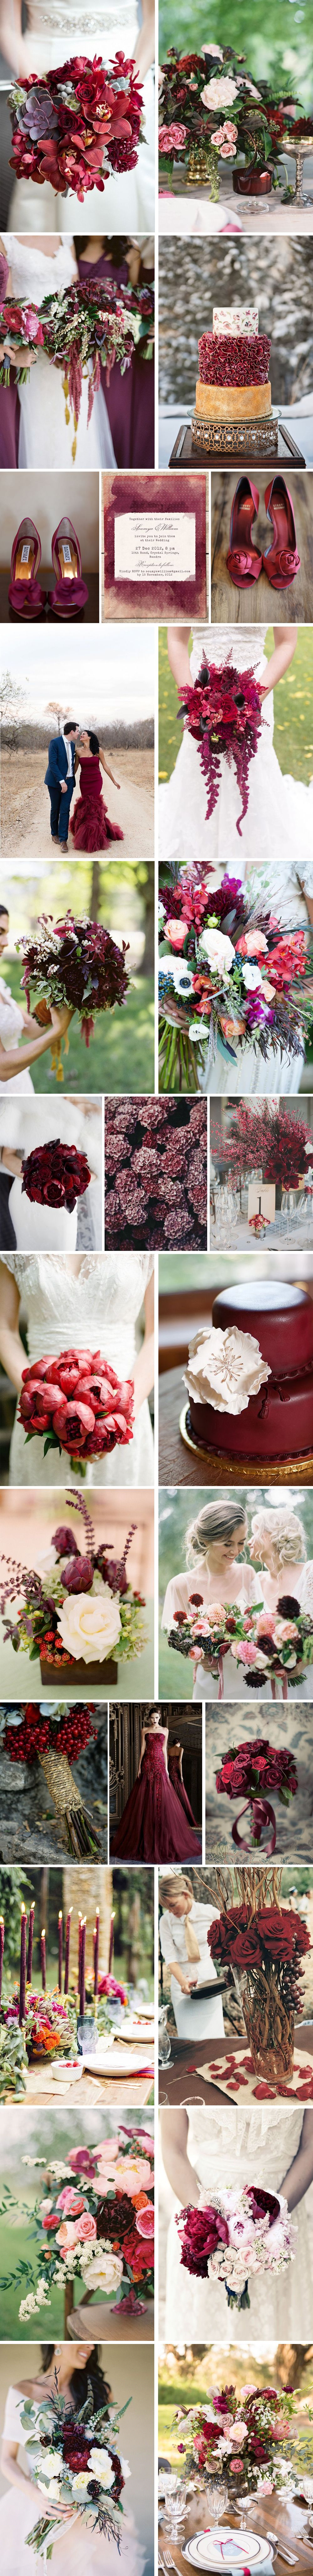 Great Pantone Color Of 2015 Marsala Wedding Inspiration. Fall Wedding, Marsala,  Olive Green, Gold, And Sapphire Blue Would Be Gorgeous!